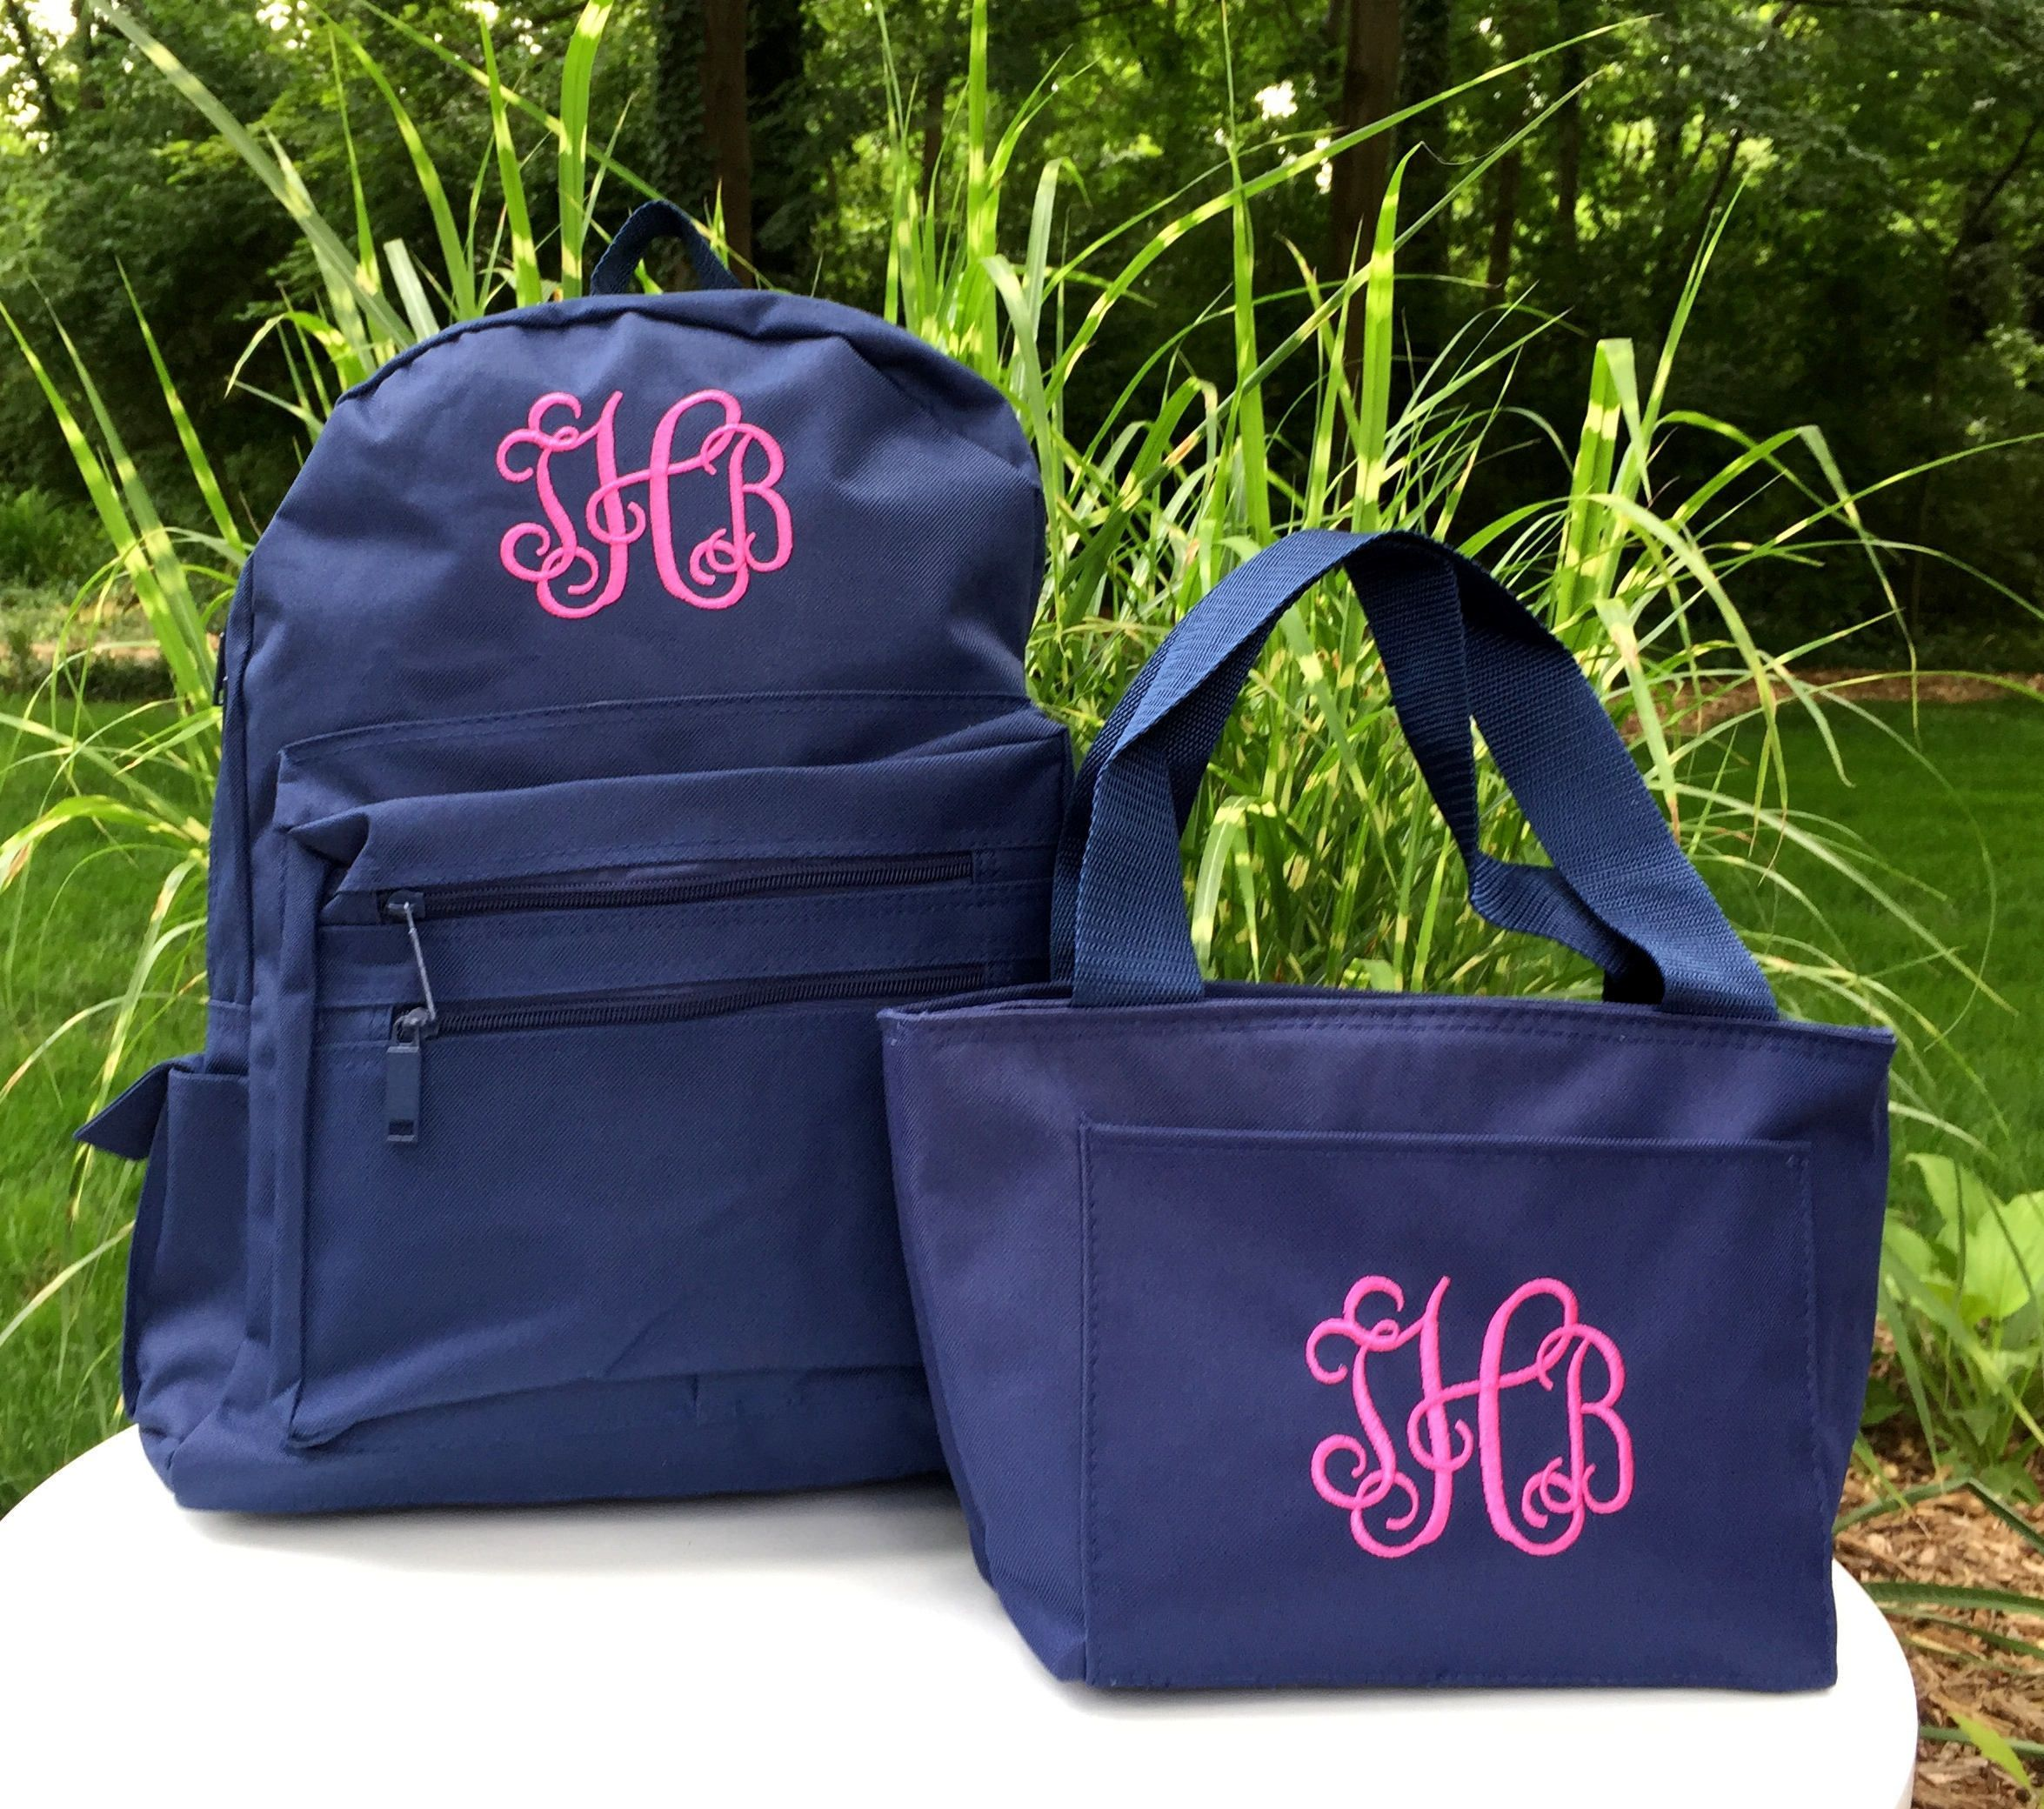 Monogrammed Backpack and Lunchbox - Personalized School Girls Back Pack - Book  Bag - Kids Children - Lunch Tote - Kid Back Pack - Child Bag by MJMonograms  ... 12c901943b0d3